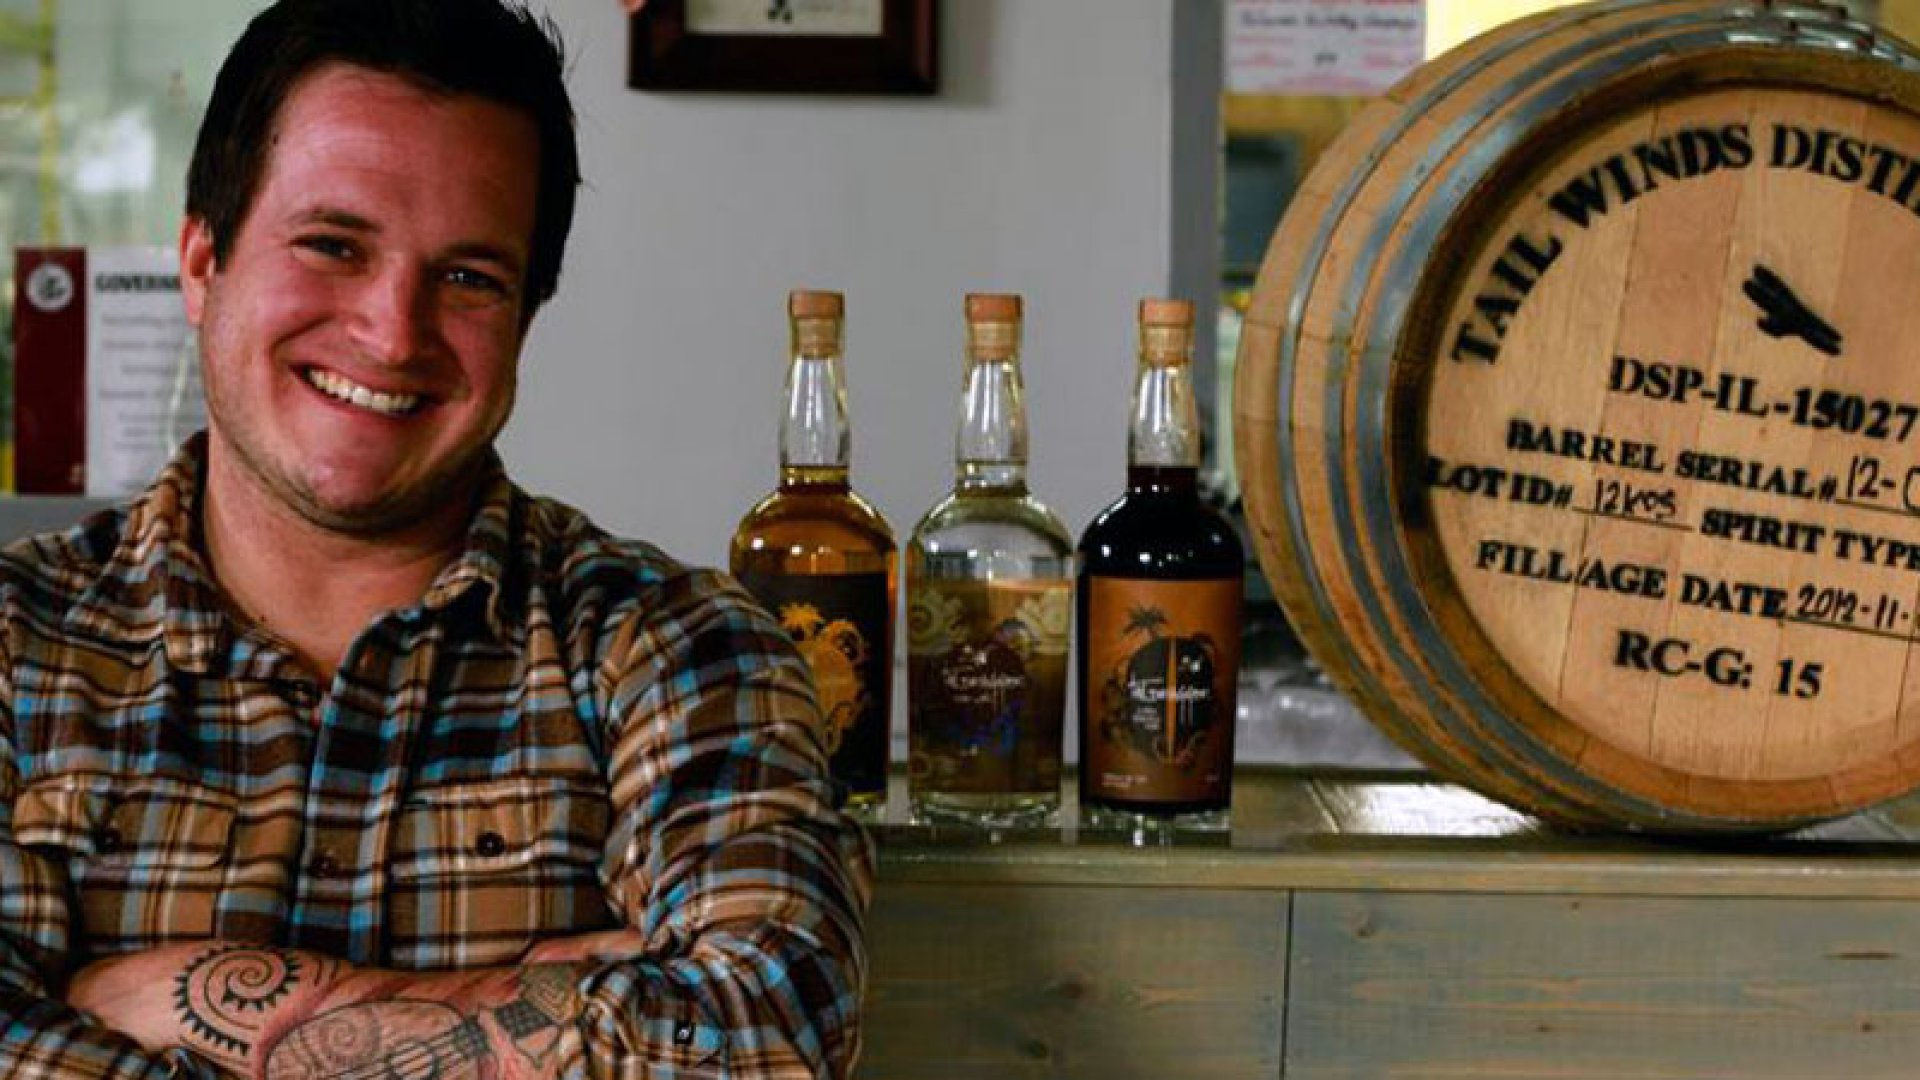 Toby Beall strikes a pose at Tailwinds Distilling.